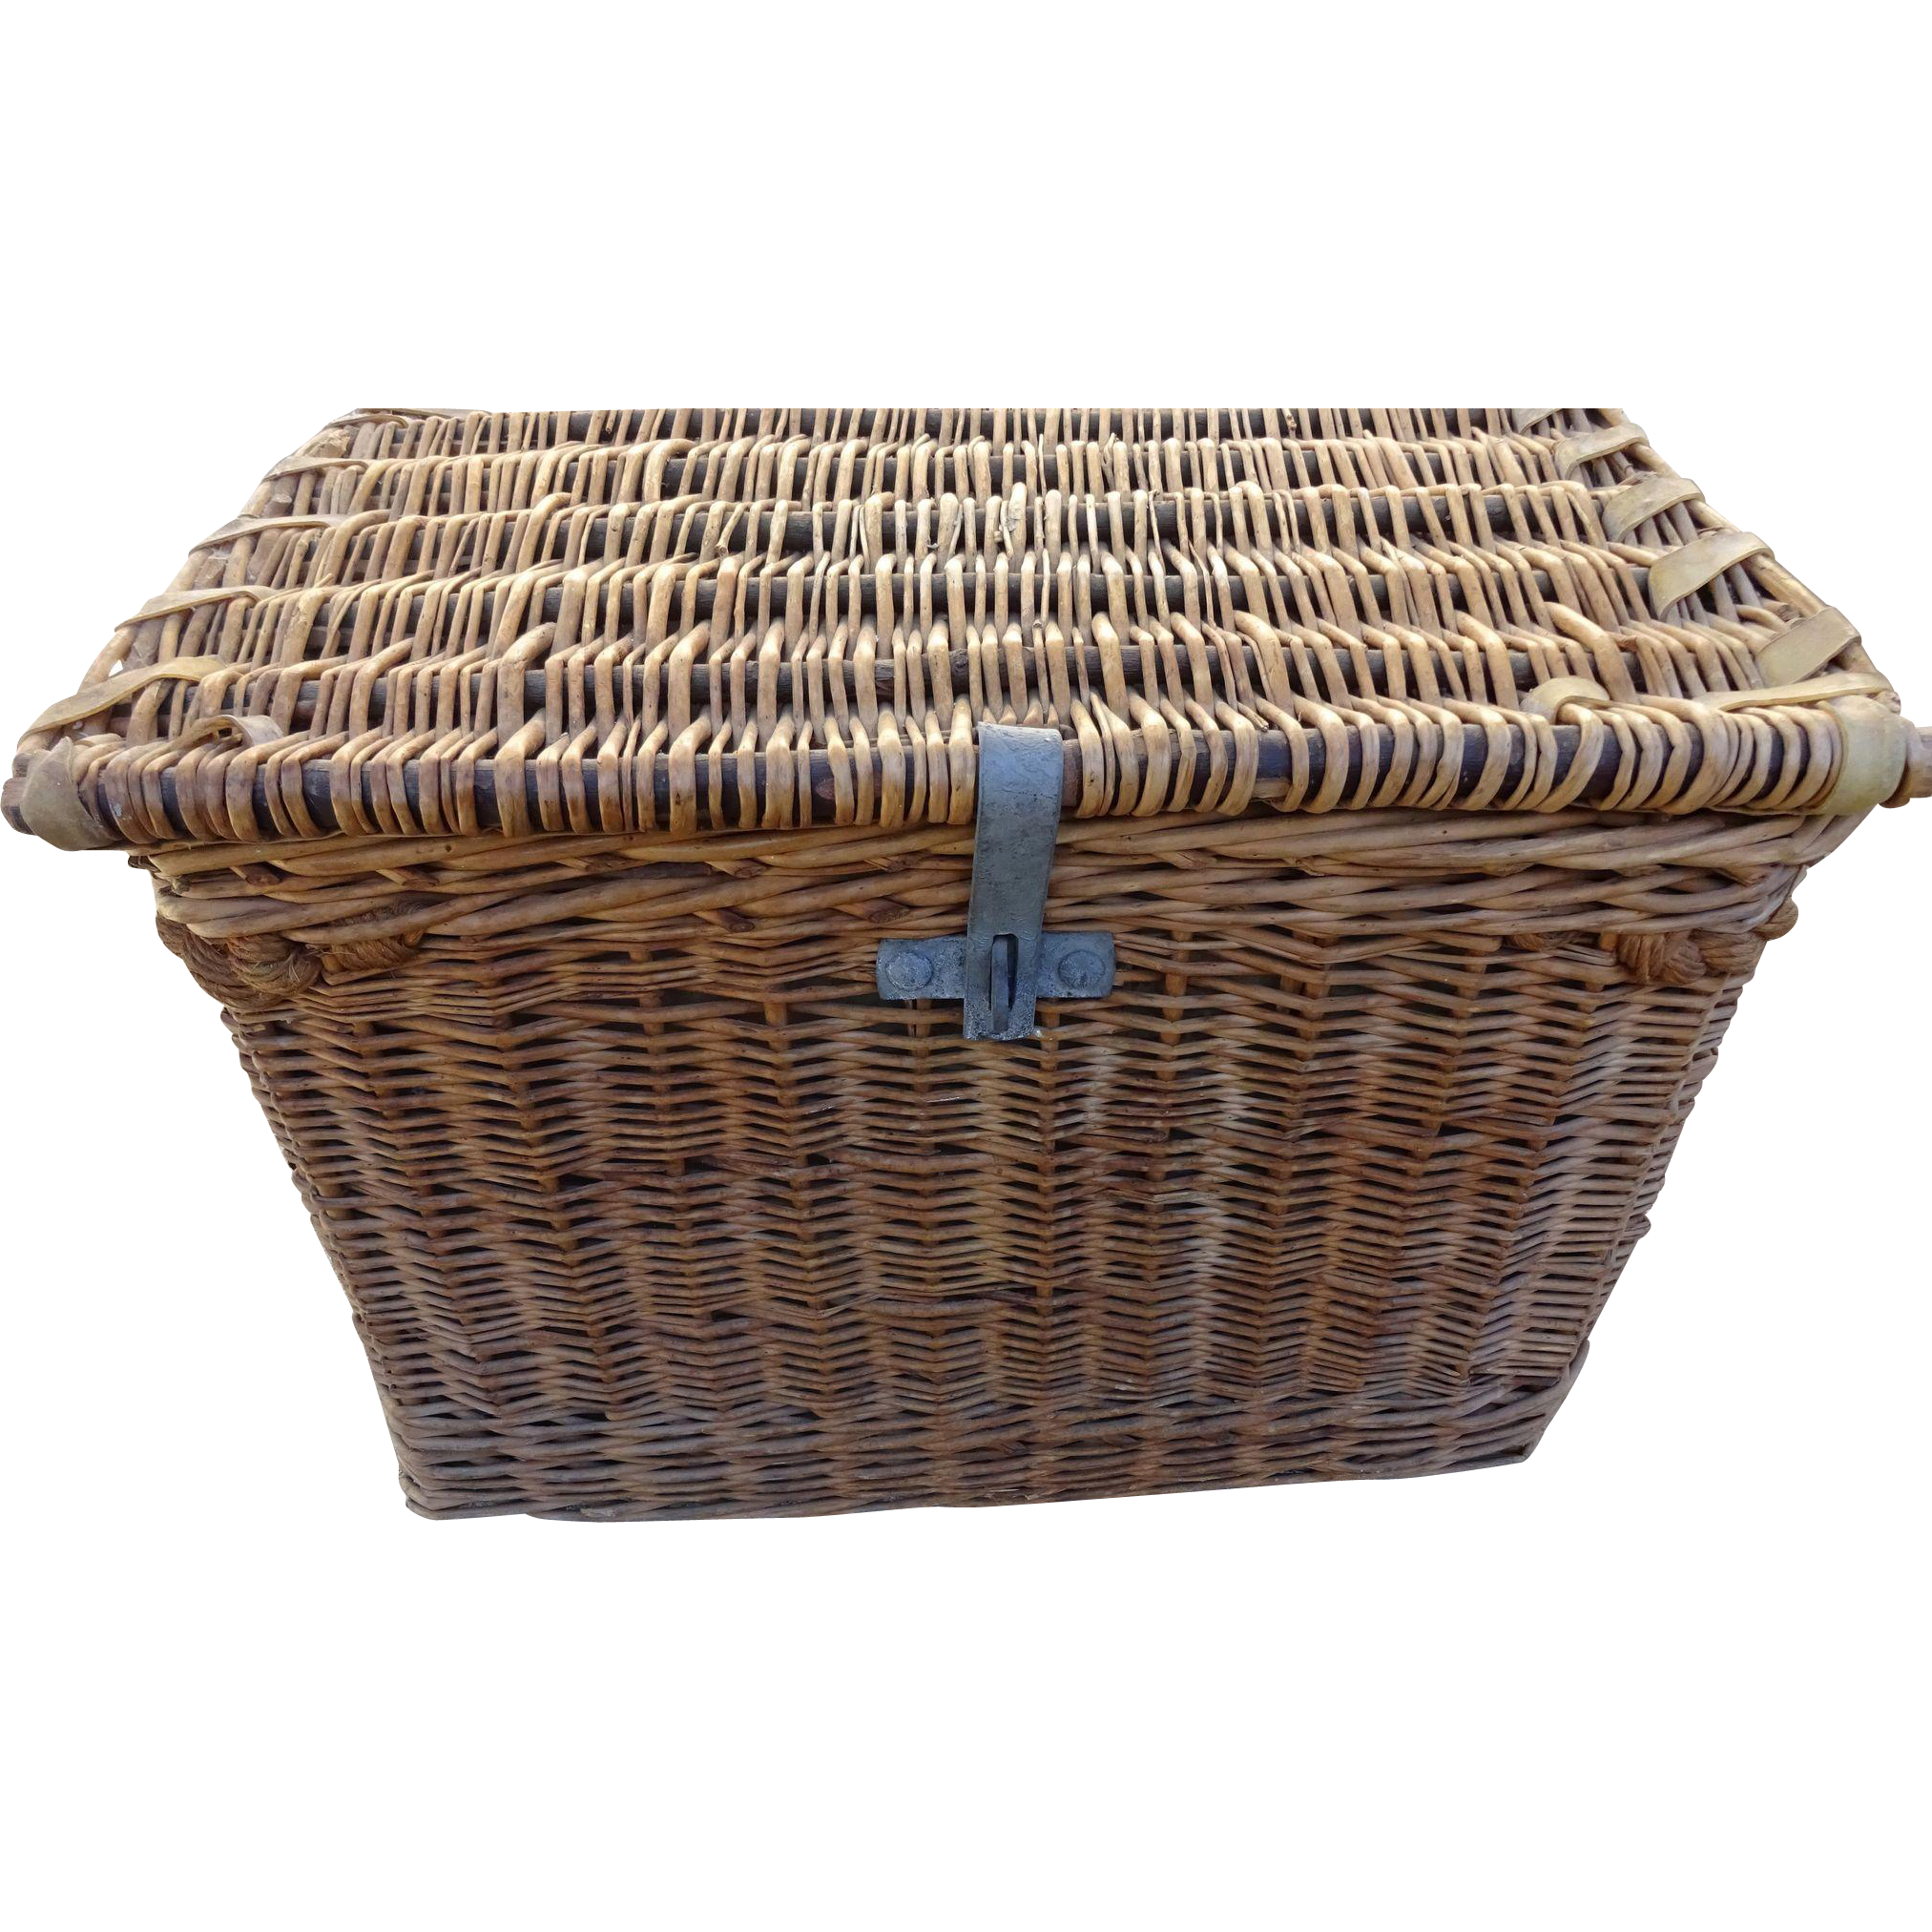 Auto Antique Wicker Trunks : Antique wicker steamer trunk french from